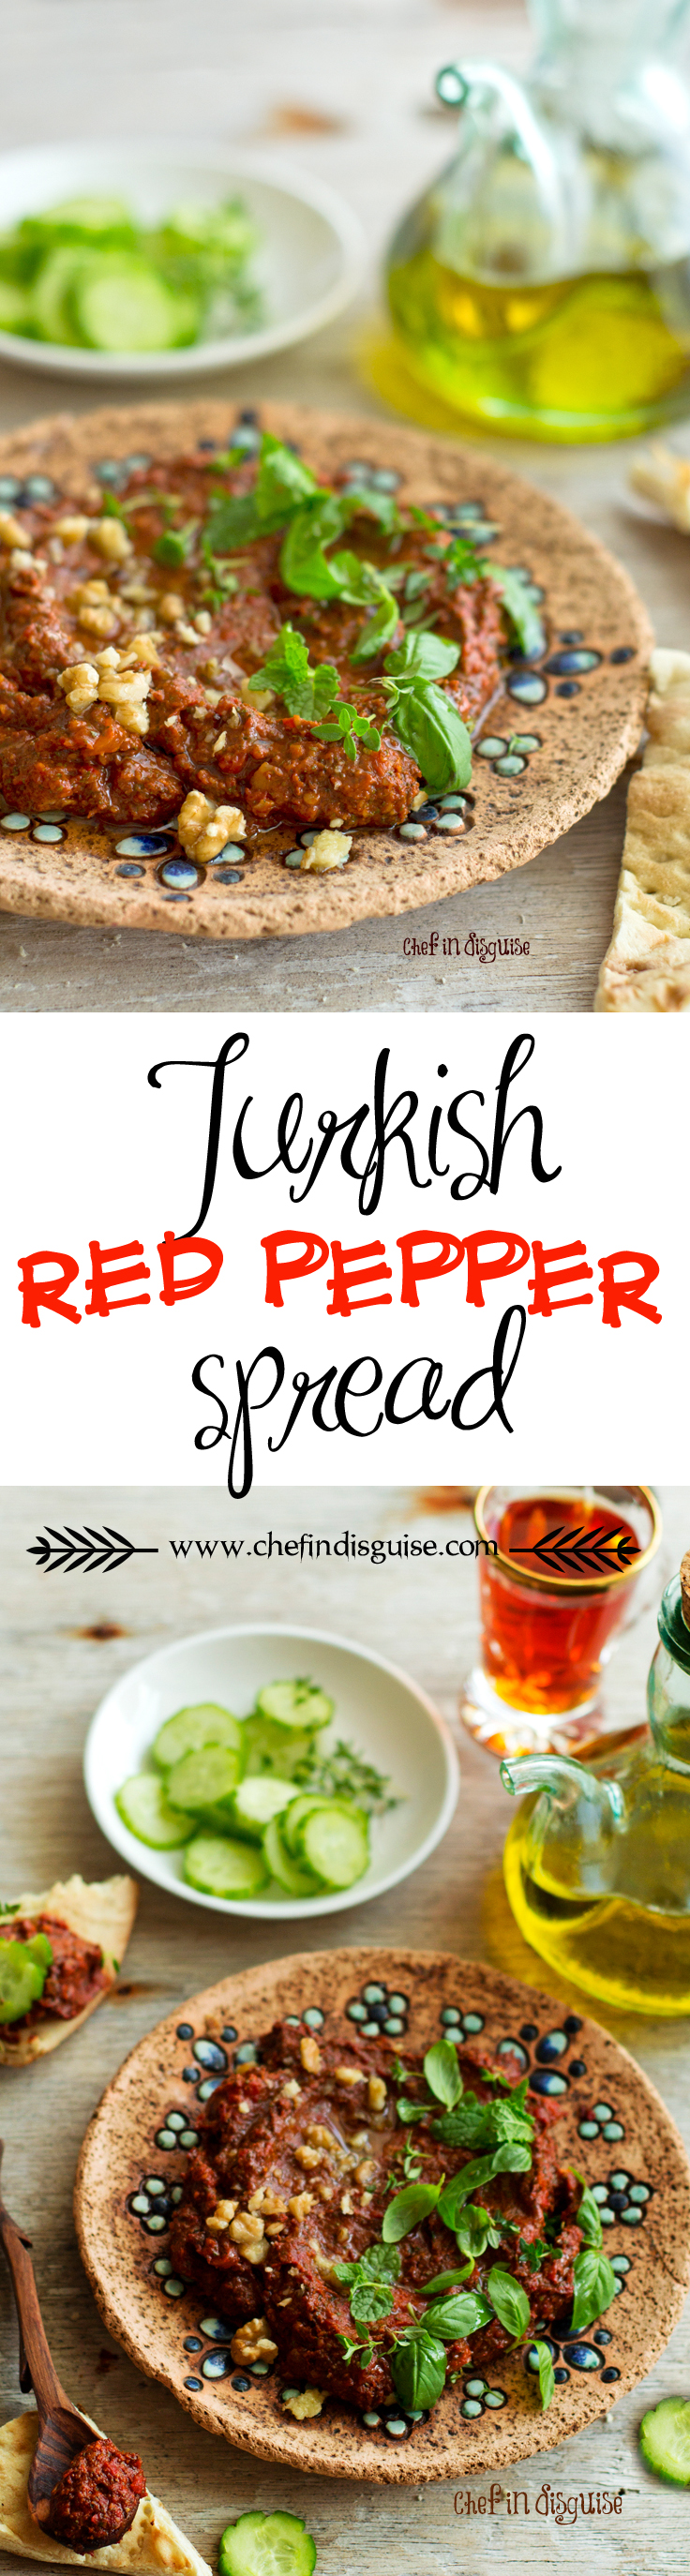 Turkish red pepper and walnut spread by chef in disguise.jpg